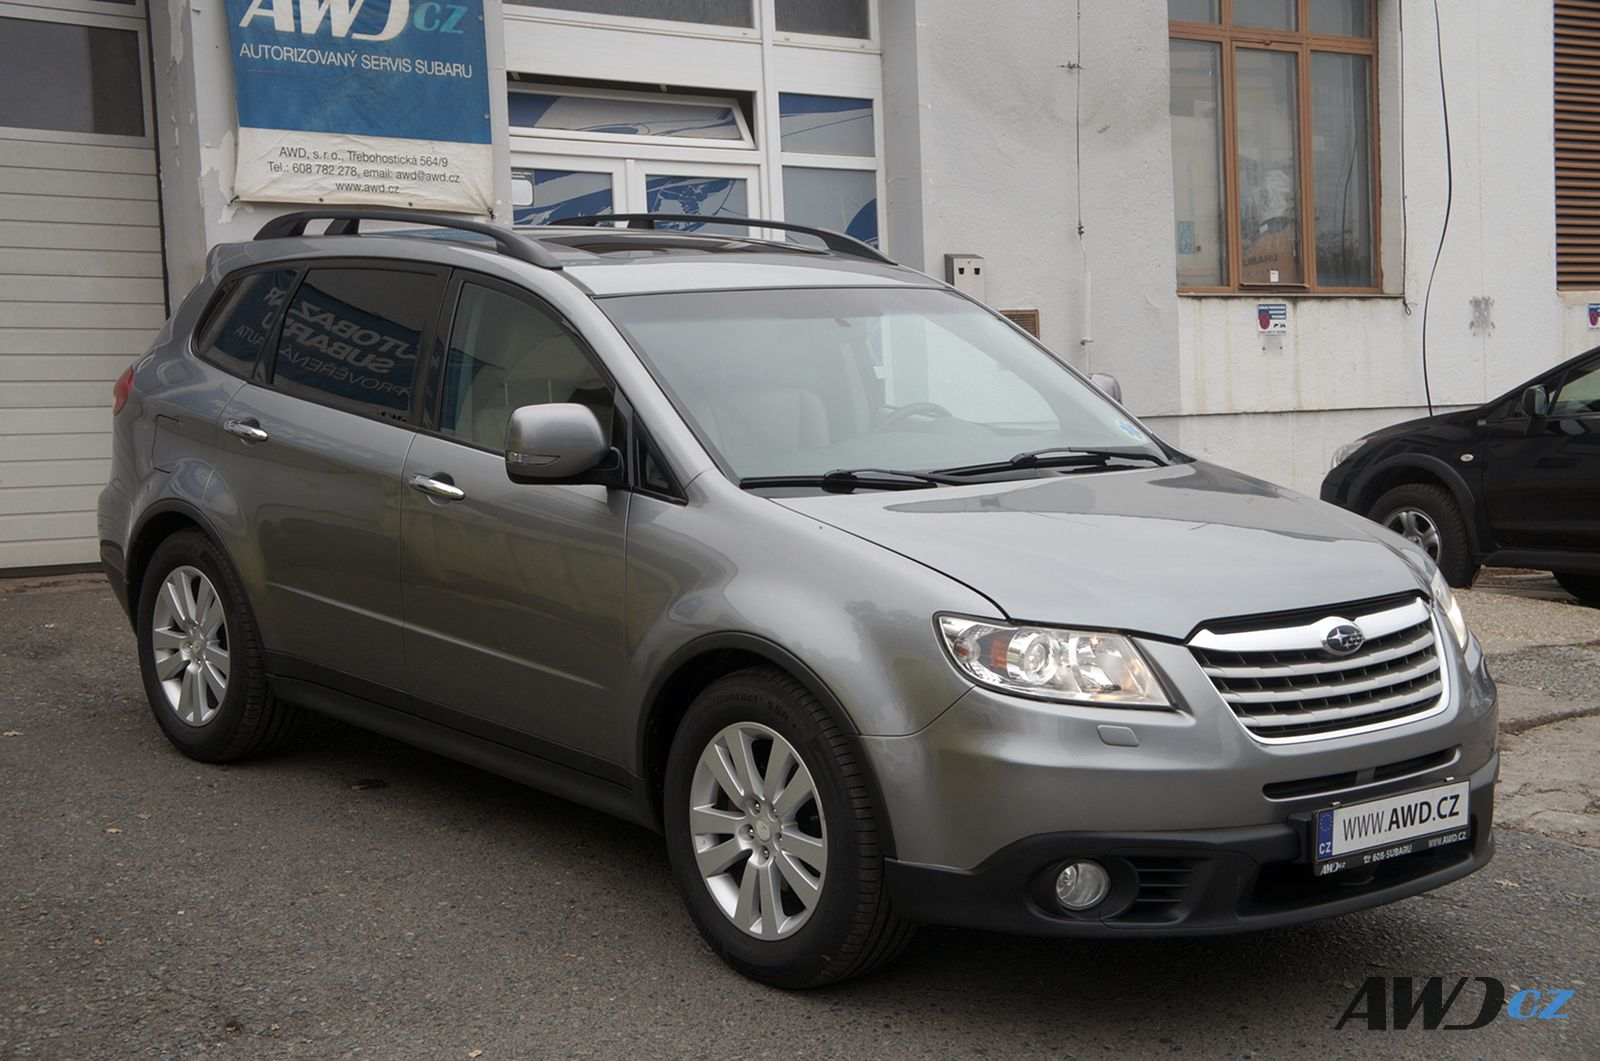 SUBARU Tribeca 3.6 Executive +2 MY2008, 279000Kč, 235000 km, 2009